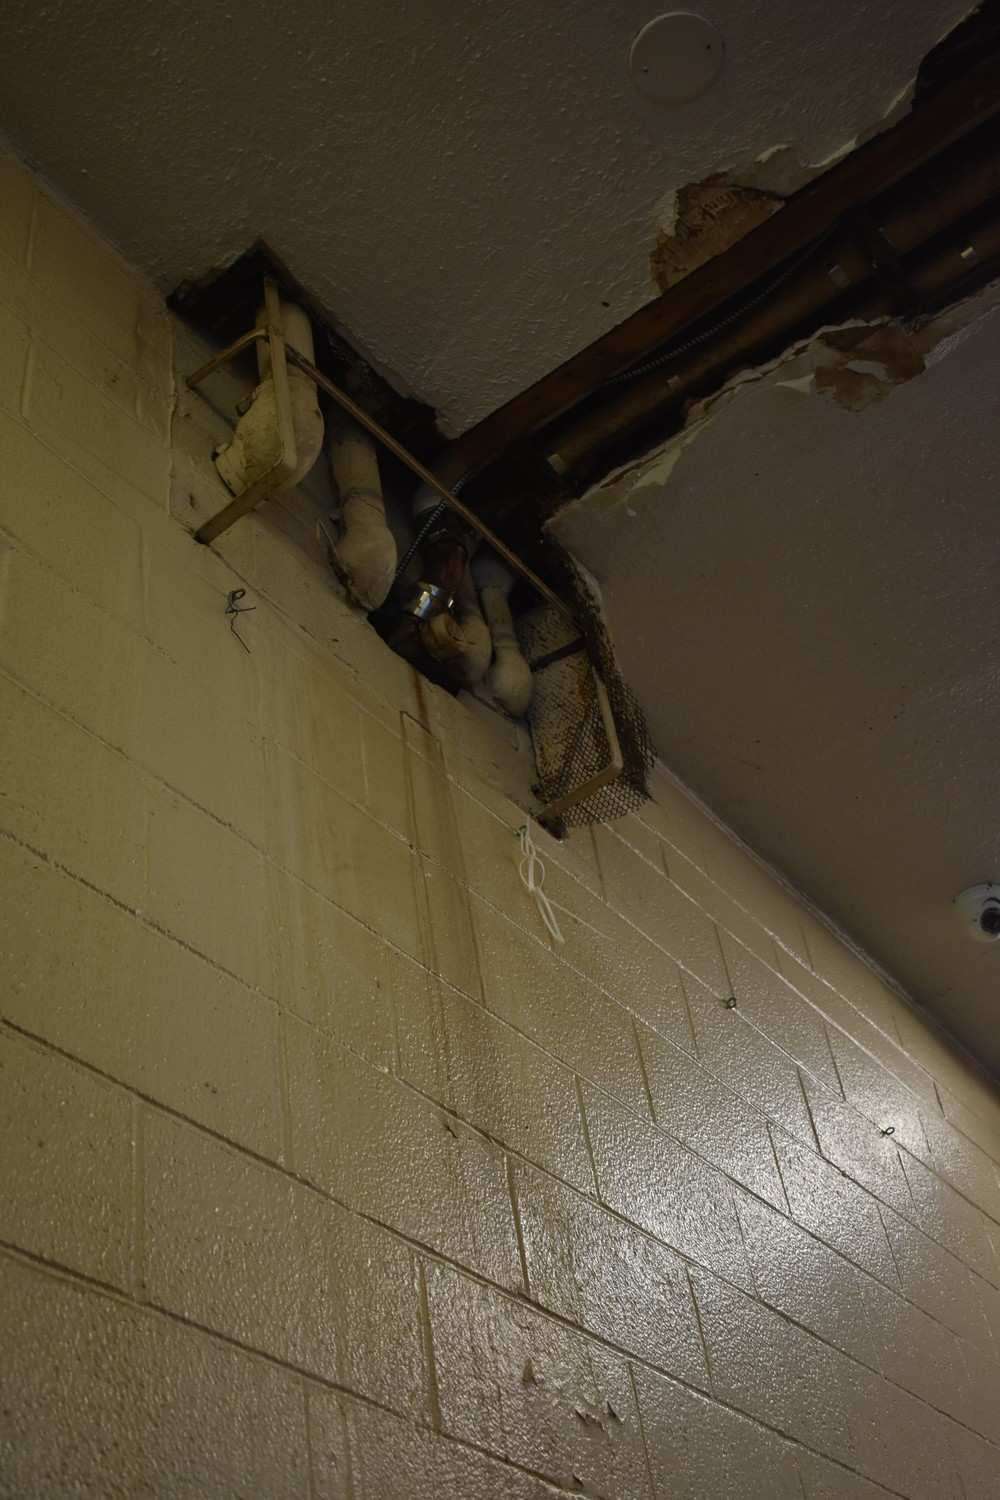 Pipes on the wall of the firehouse at 103 Maple Ave. have leaked wastewater, according to Fire Chief Brian Cook.